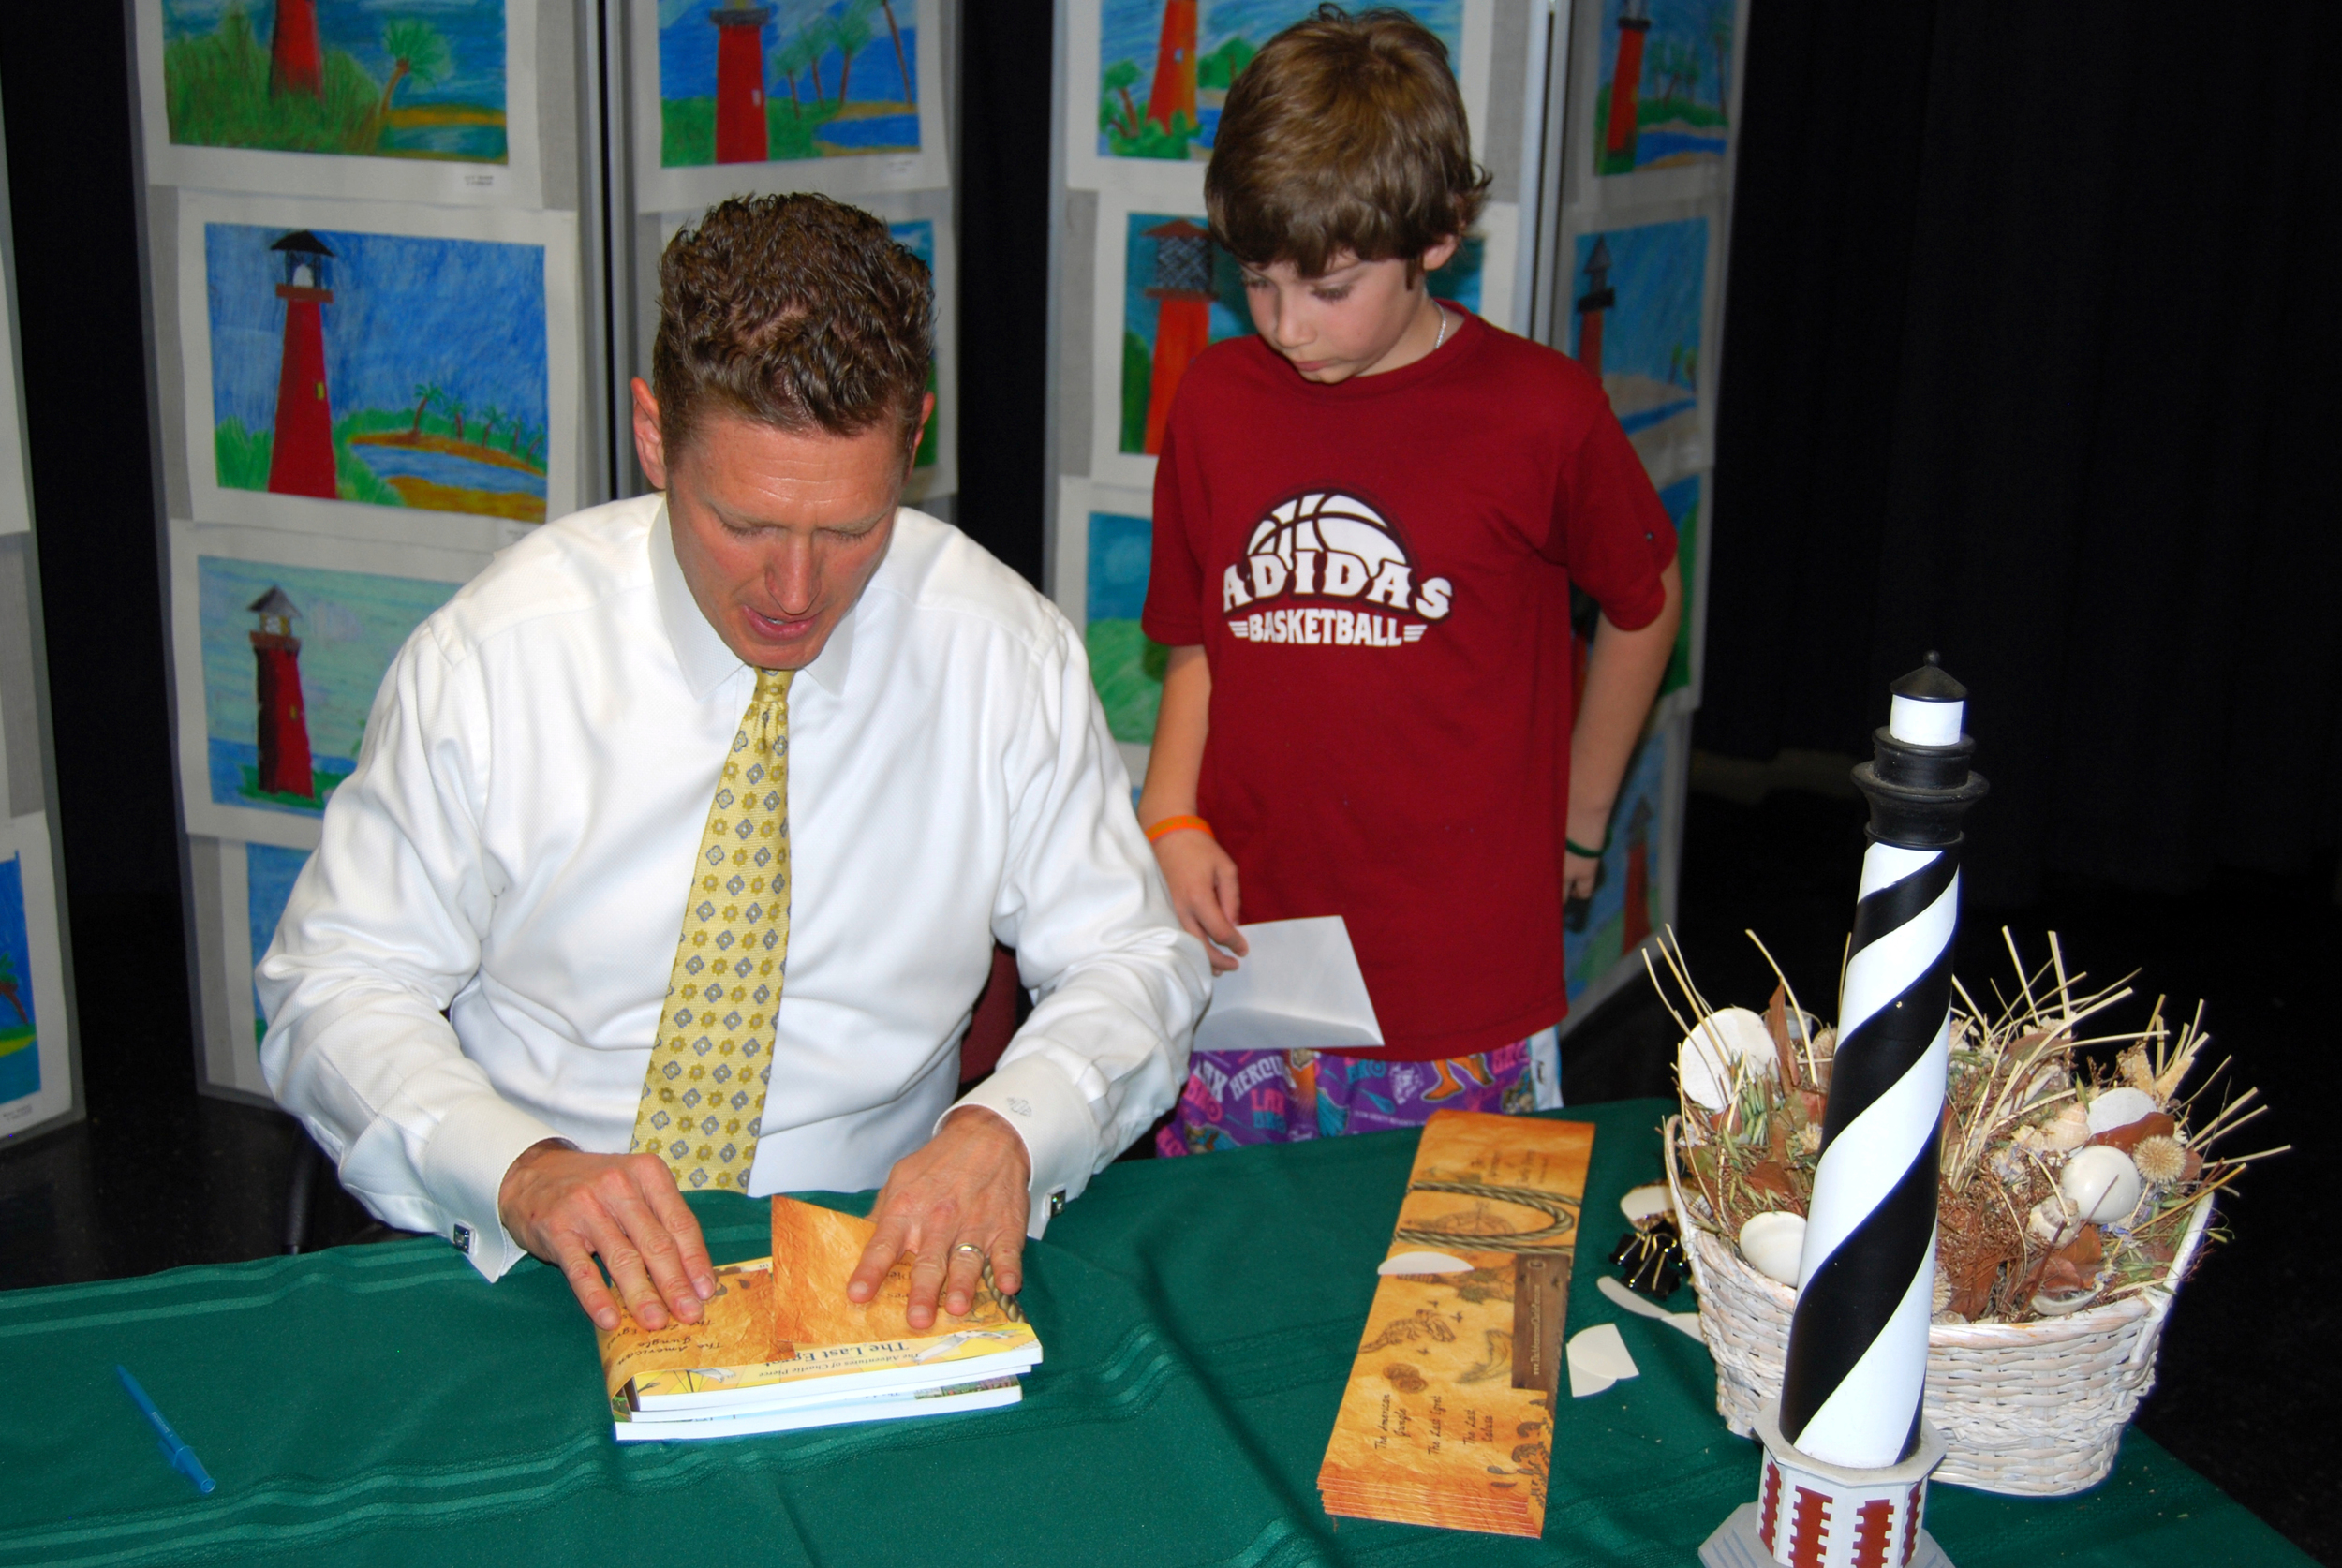 harvey-oyer-with-students-8.JPG